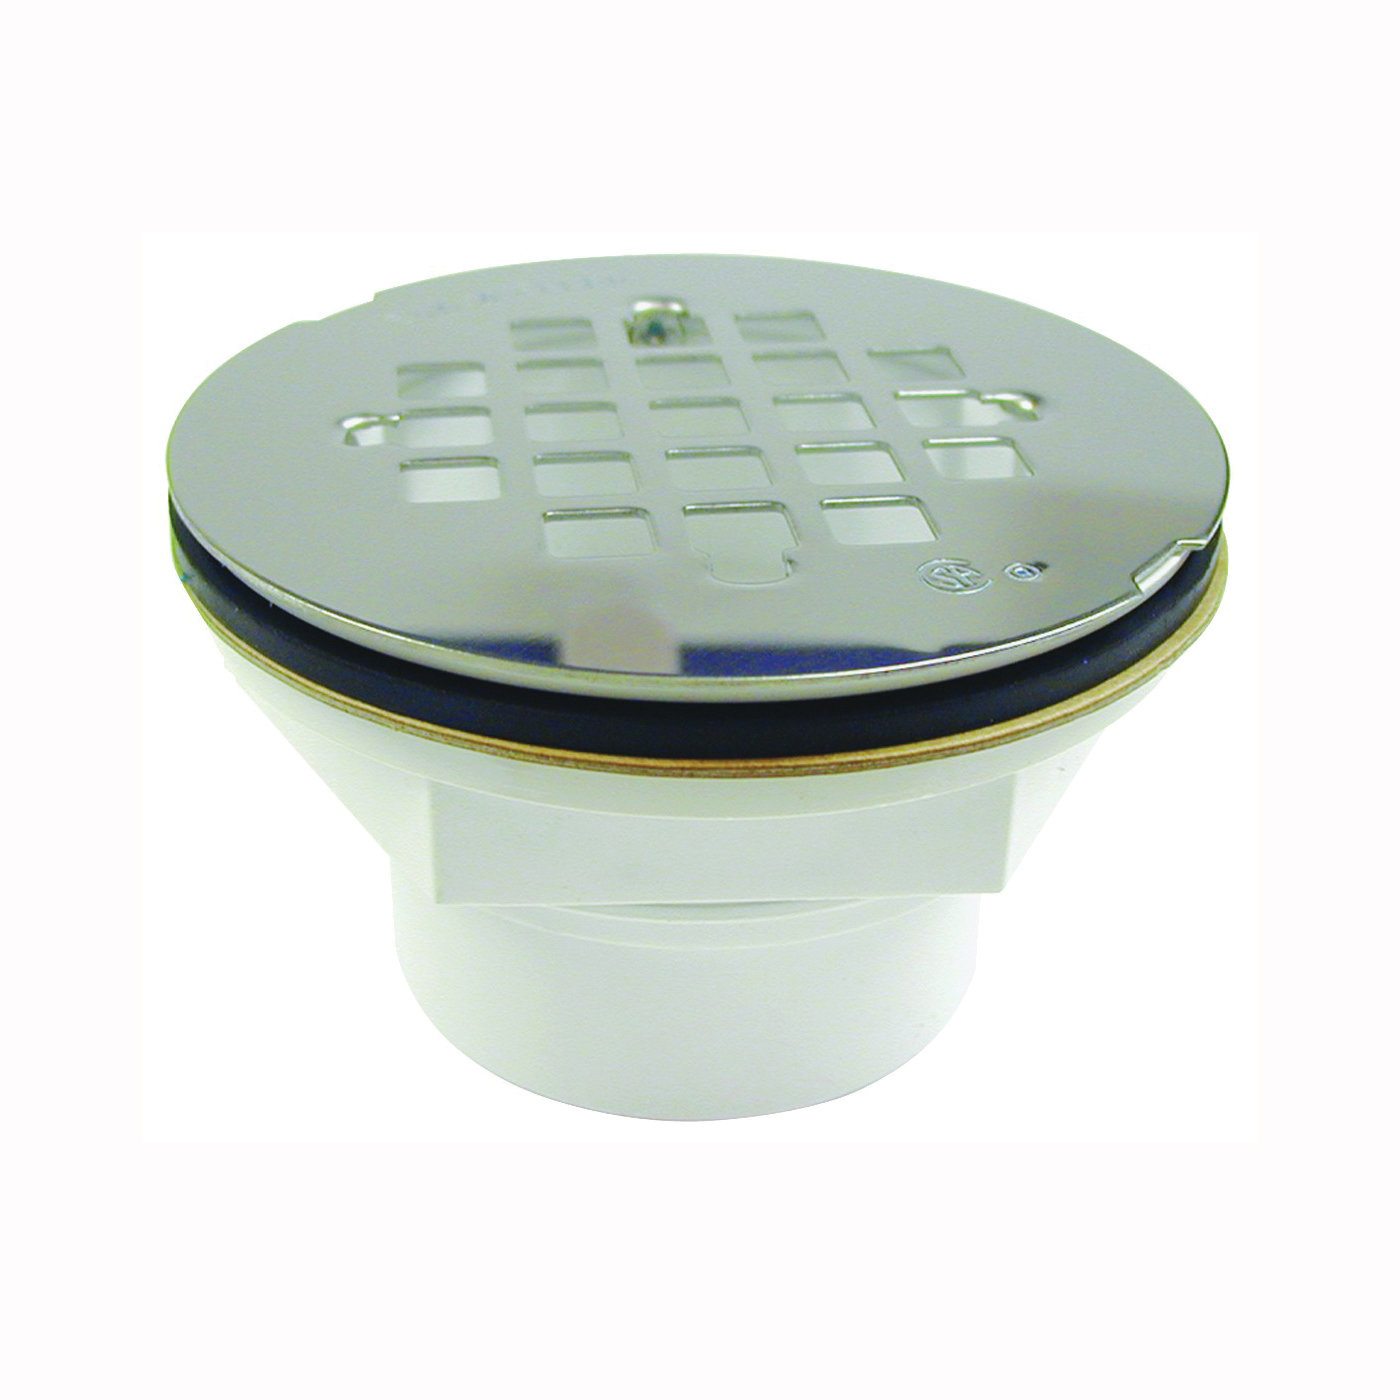 Picture of B & K 133-106 Shower Drain, Plastic, For: 2 in DWV or SCH 40 ABS or PVC Pipes